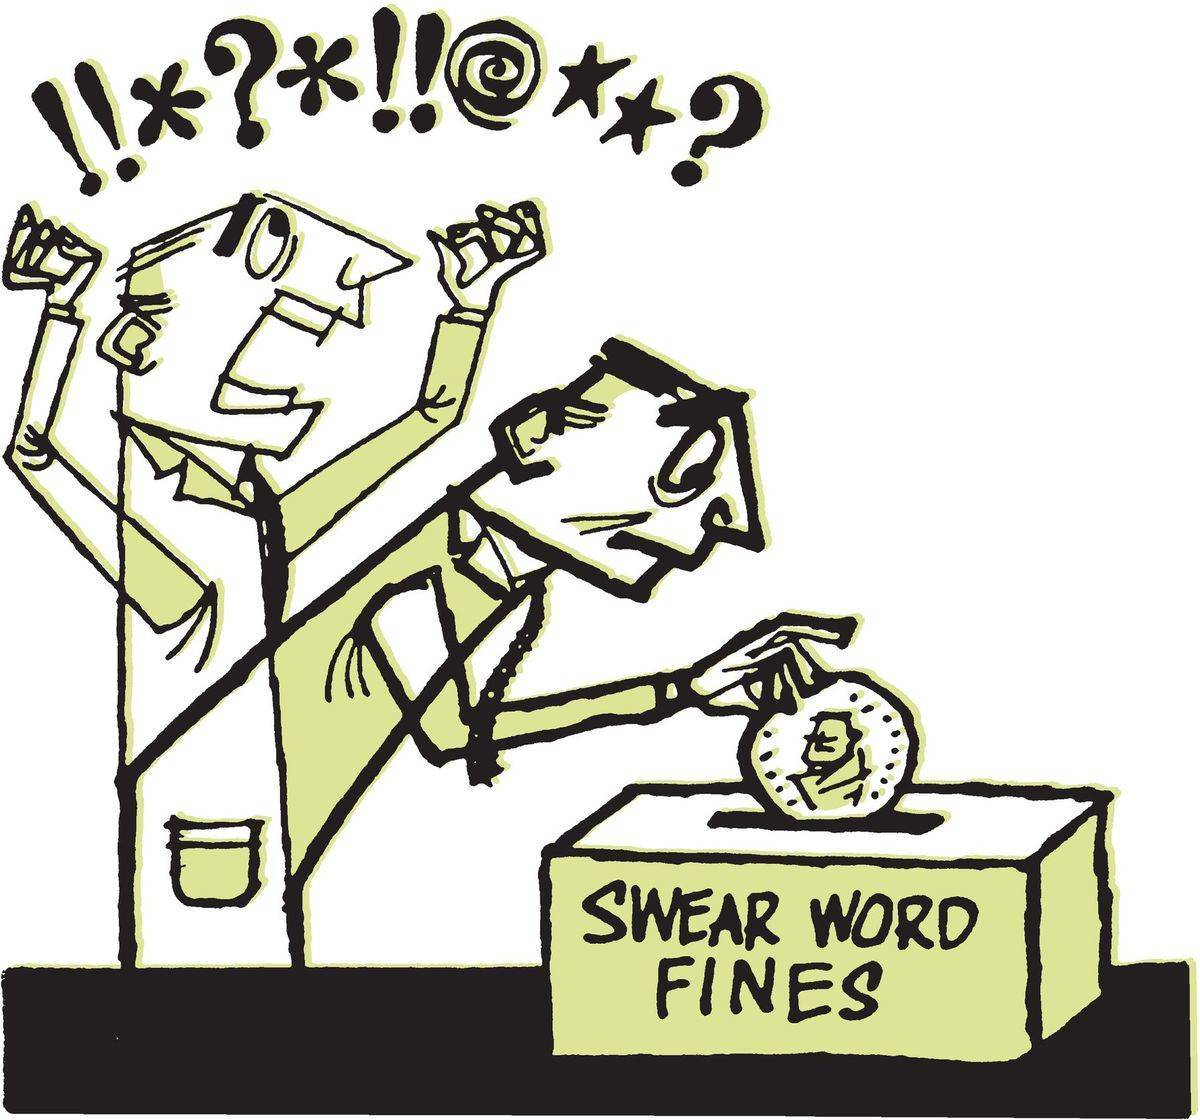 In this comic, a man swears (shown through symbols) and then puts a quarter in the